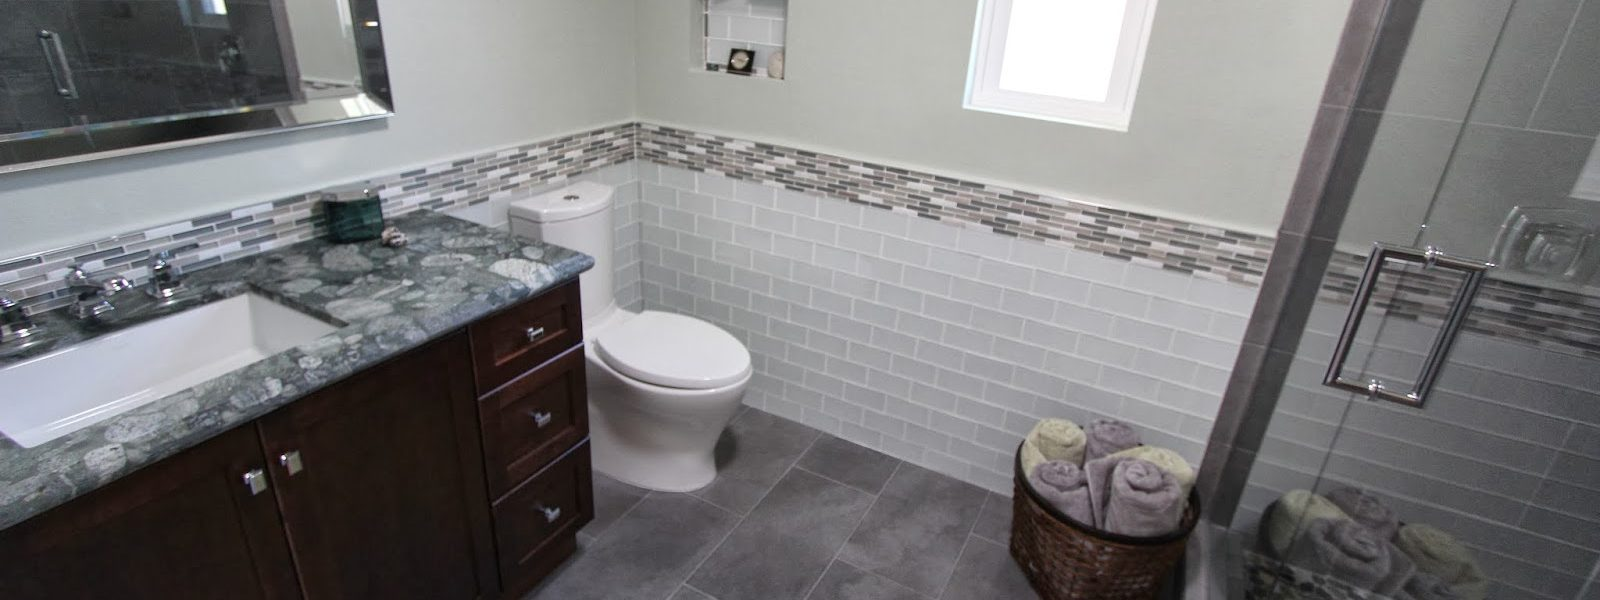 san tr diego small bathroom division a construction remodeling brightening remodel